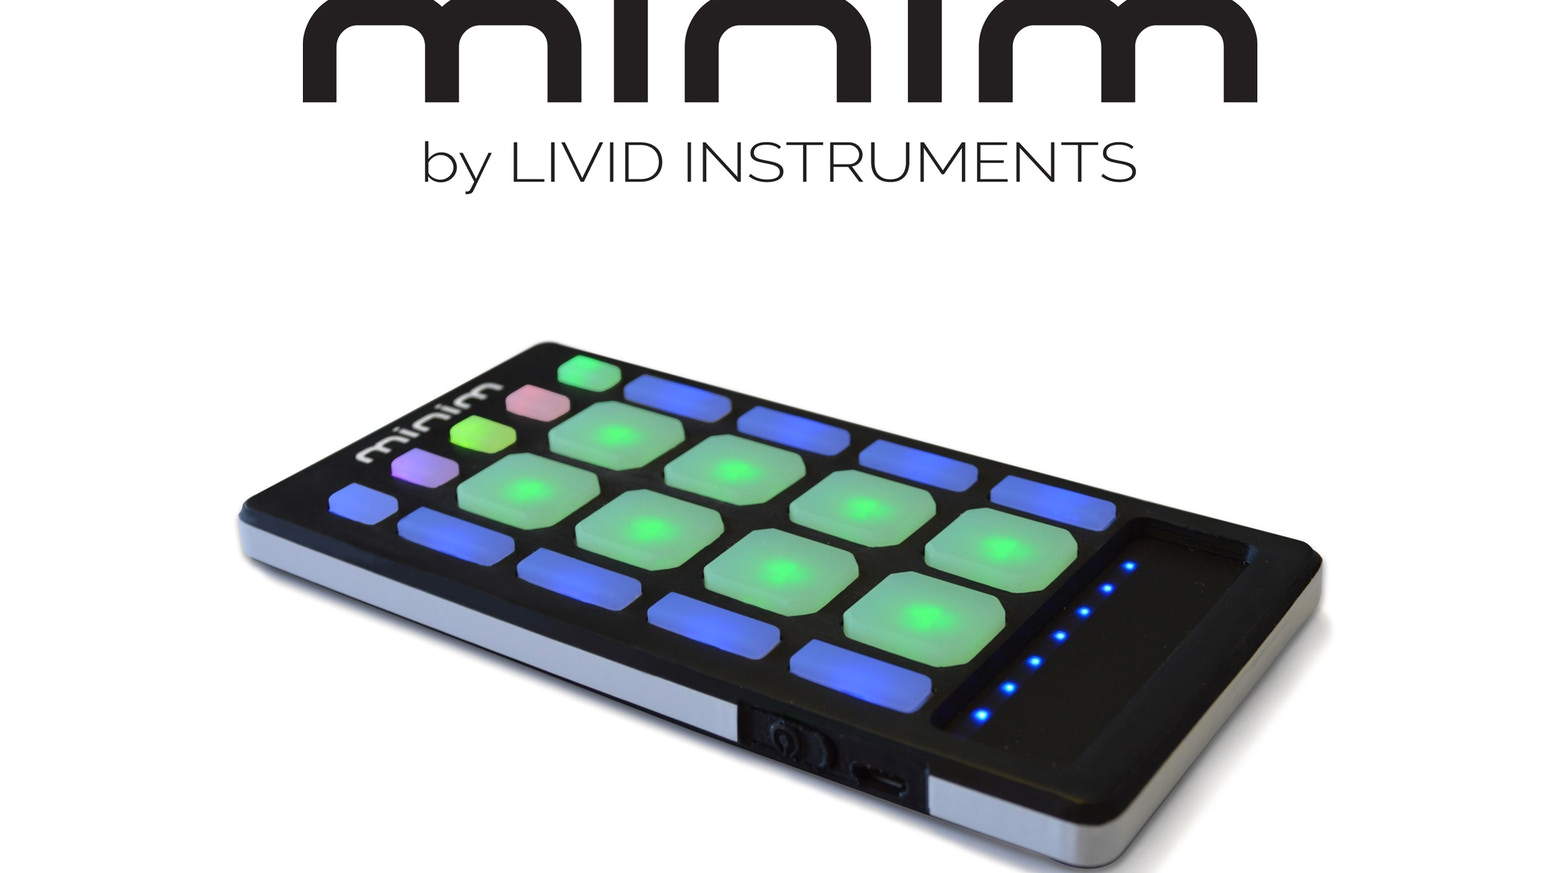 Expressively control your favorite music creation apps & software. Make music anywhere with any sound, all on one instrument.